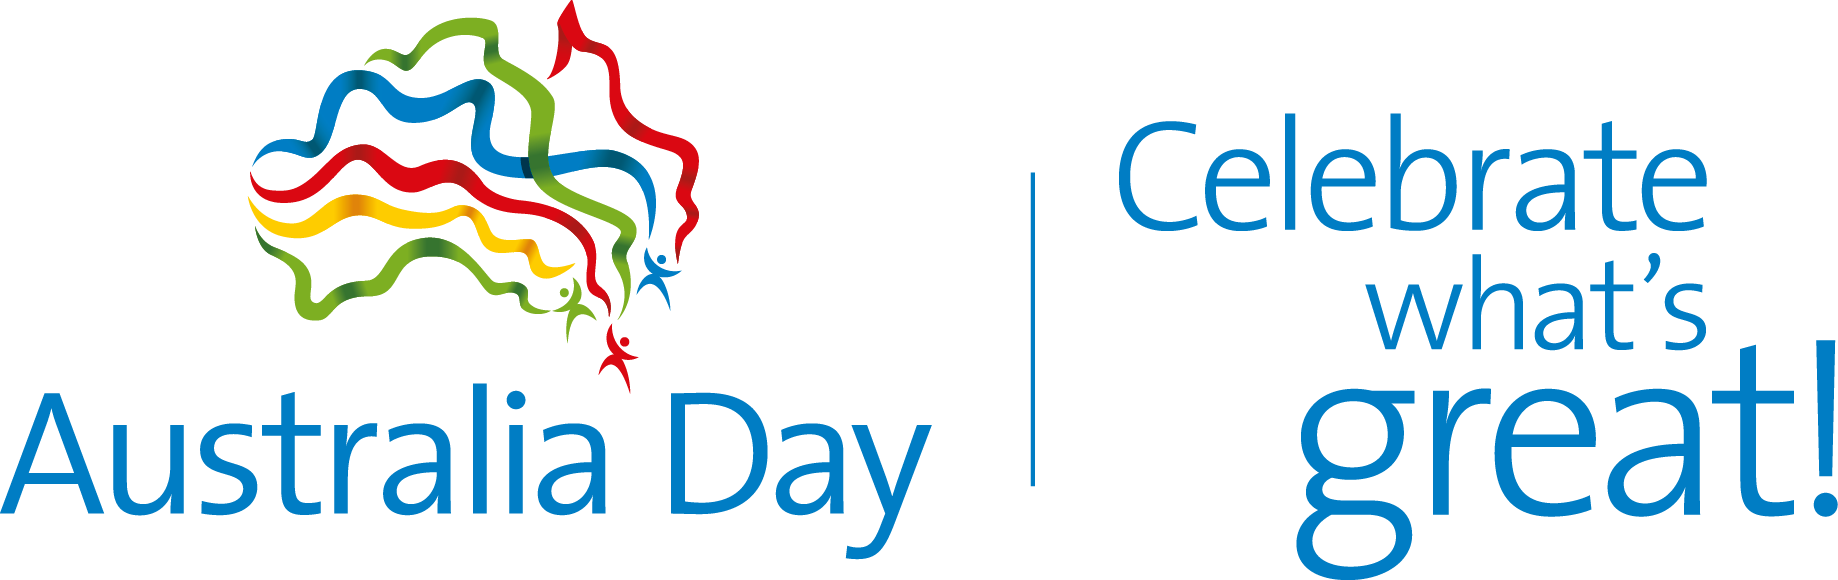 Day celebrate what s. Australia clipart text